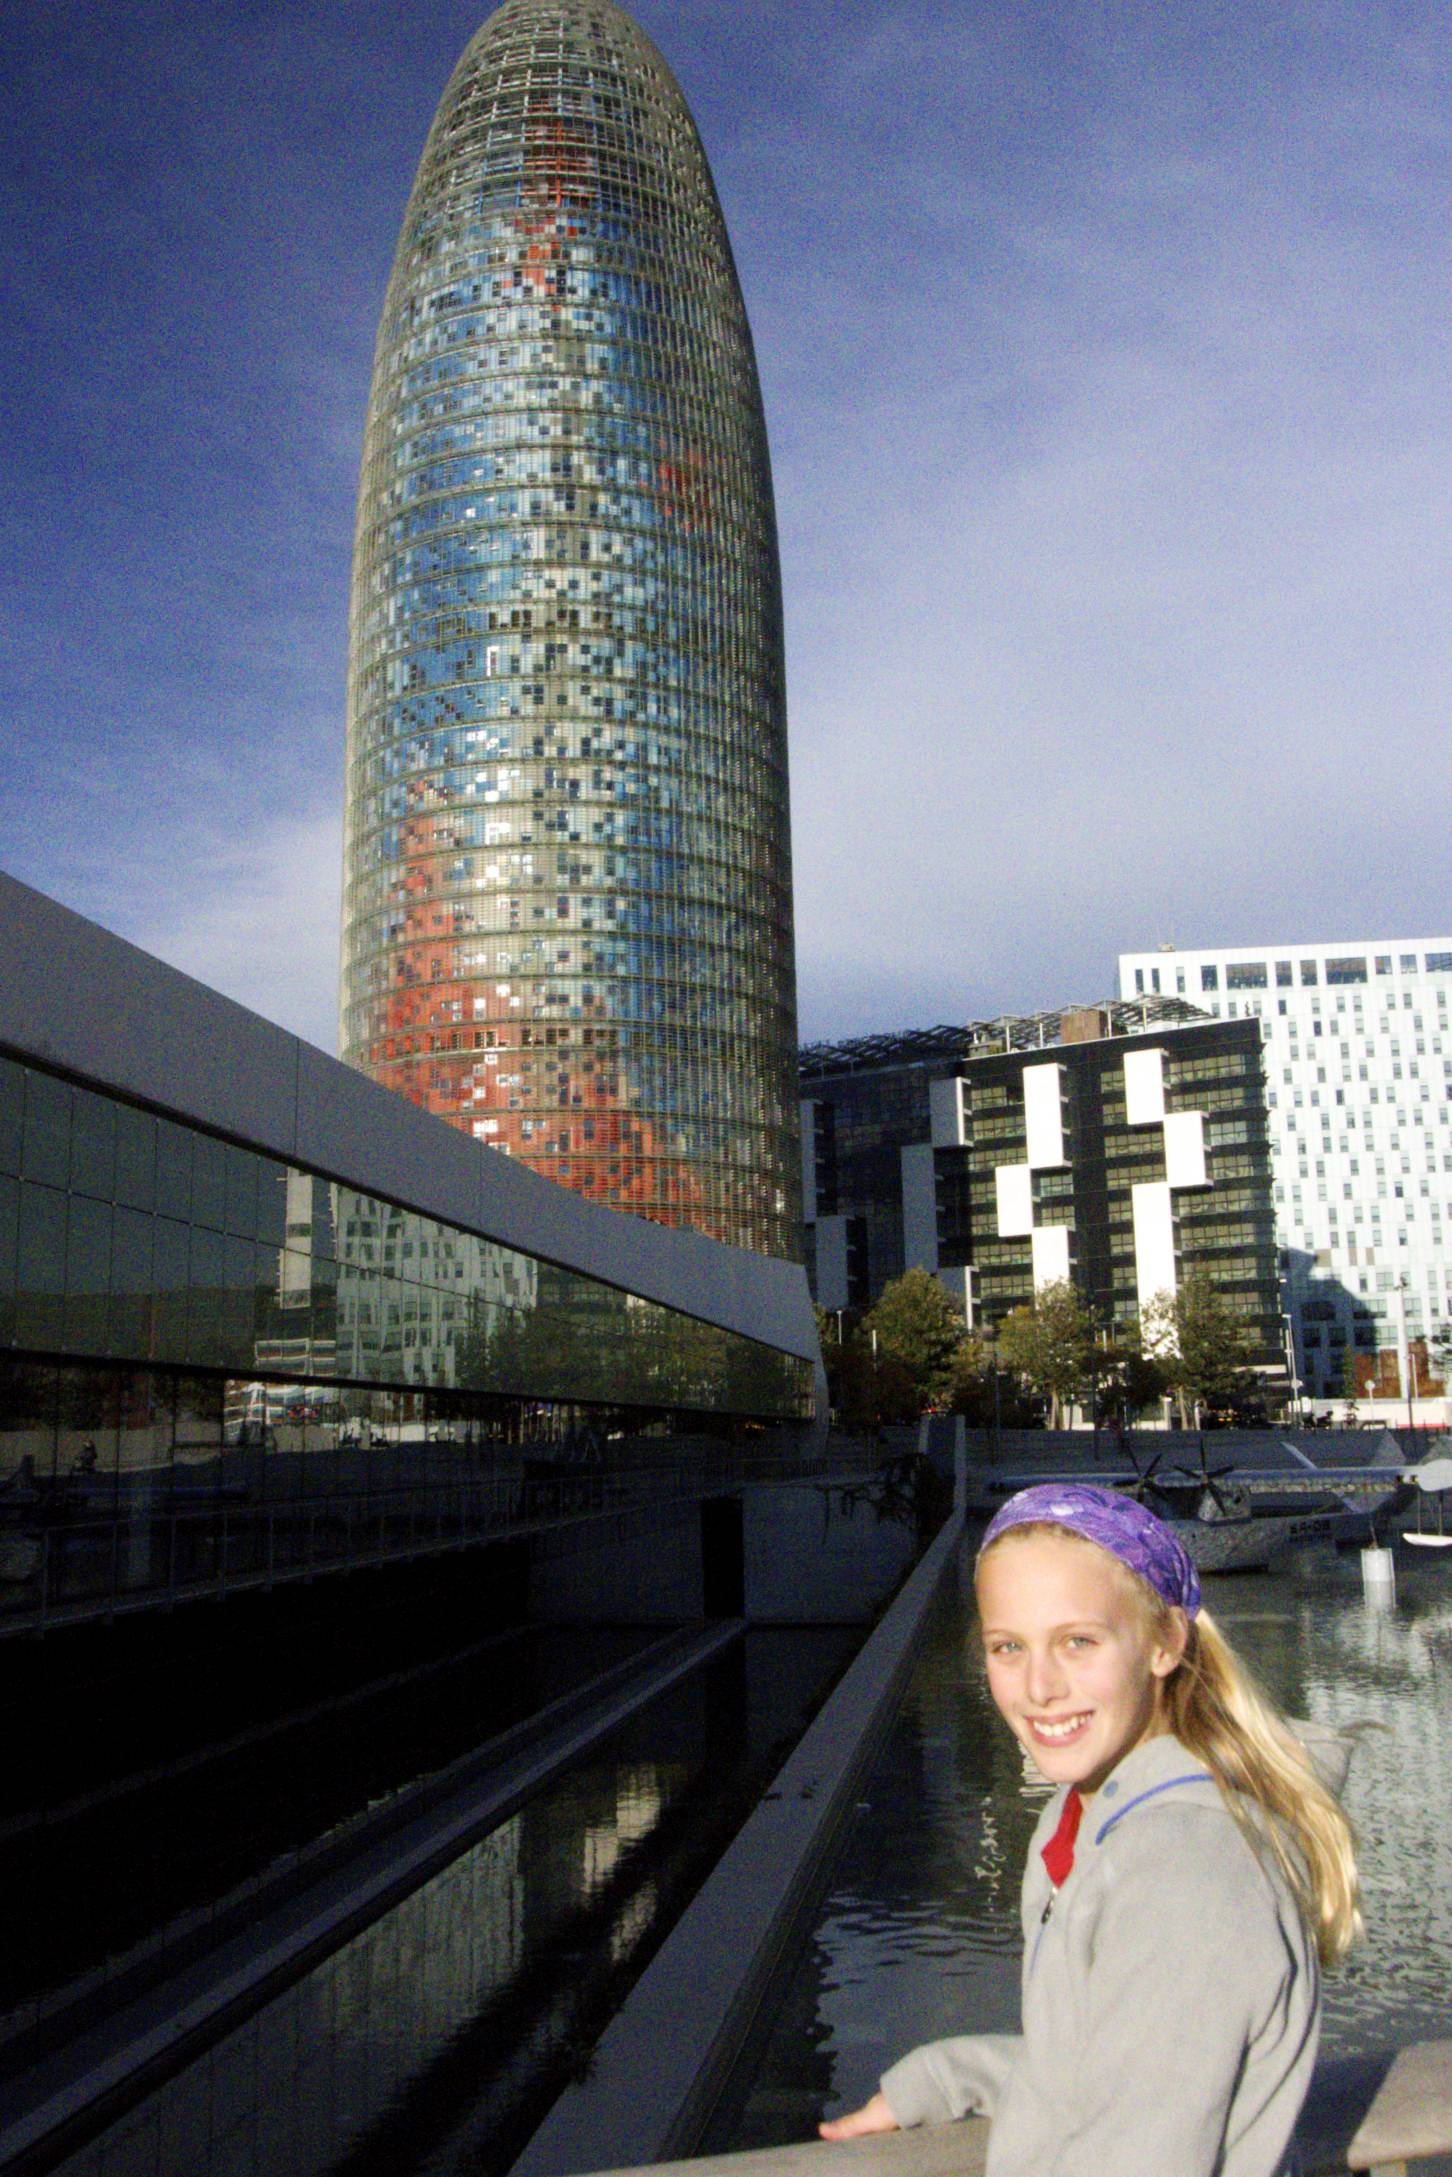 Zoe outside the Museum of Design in Barcelona with the Torre Agbar in the background.